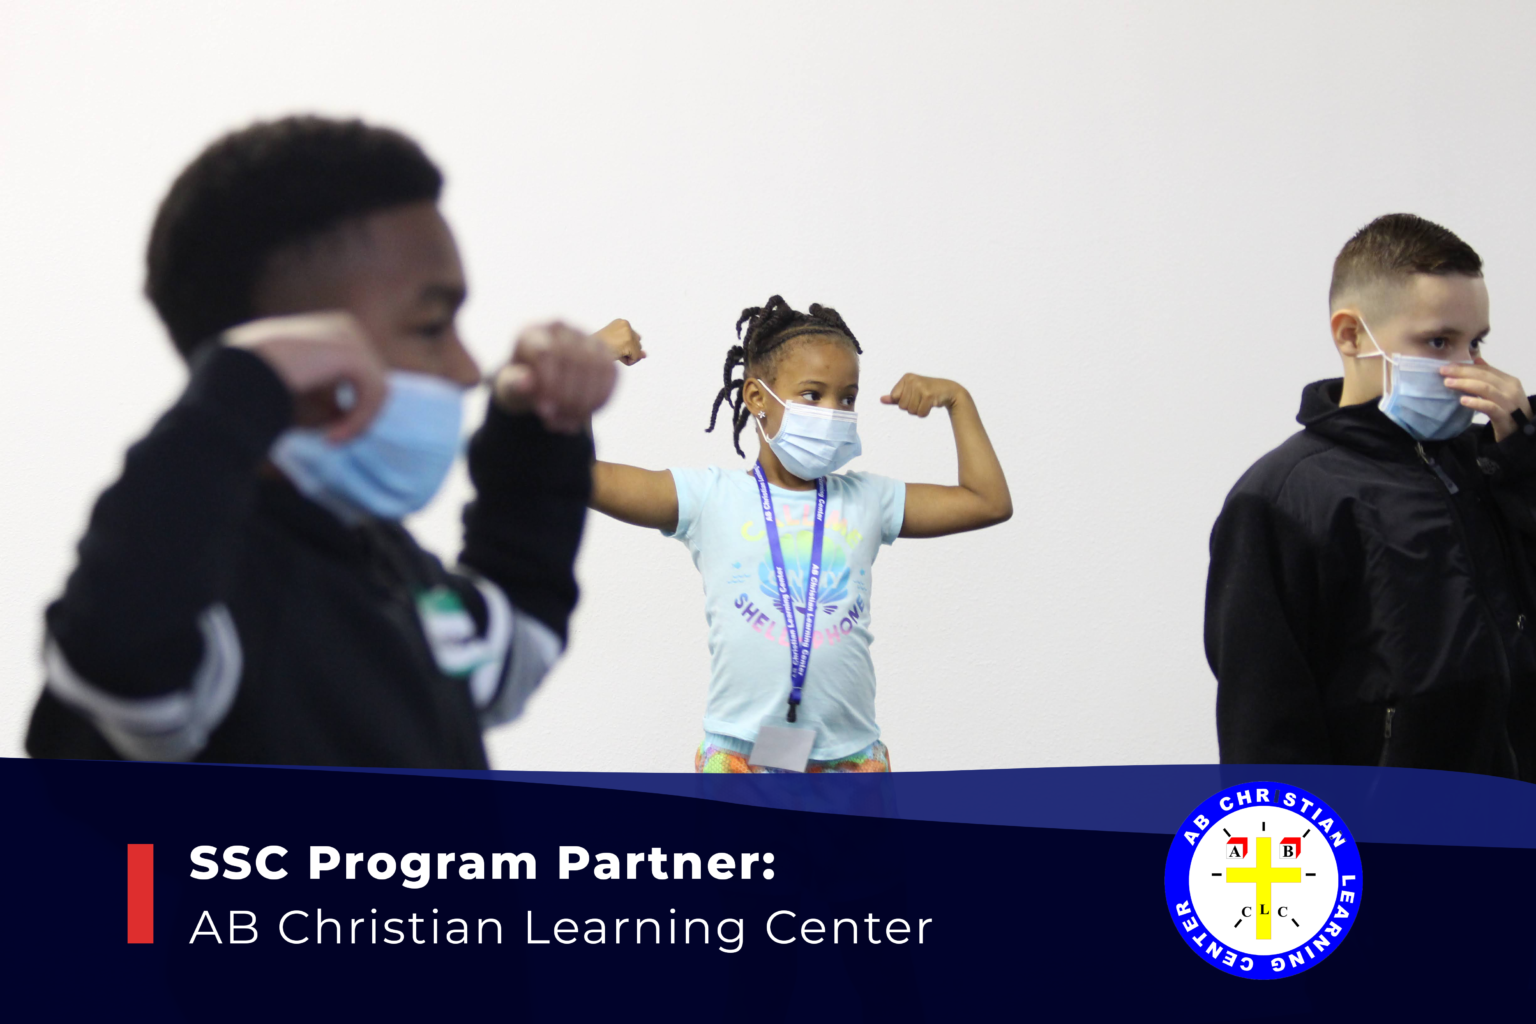 SSC-Program-Partner-AB-Christian-Learning-Center